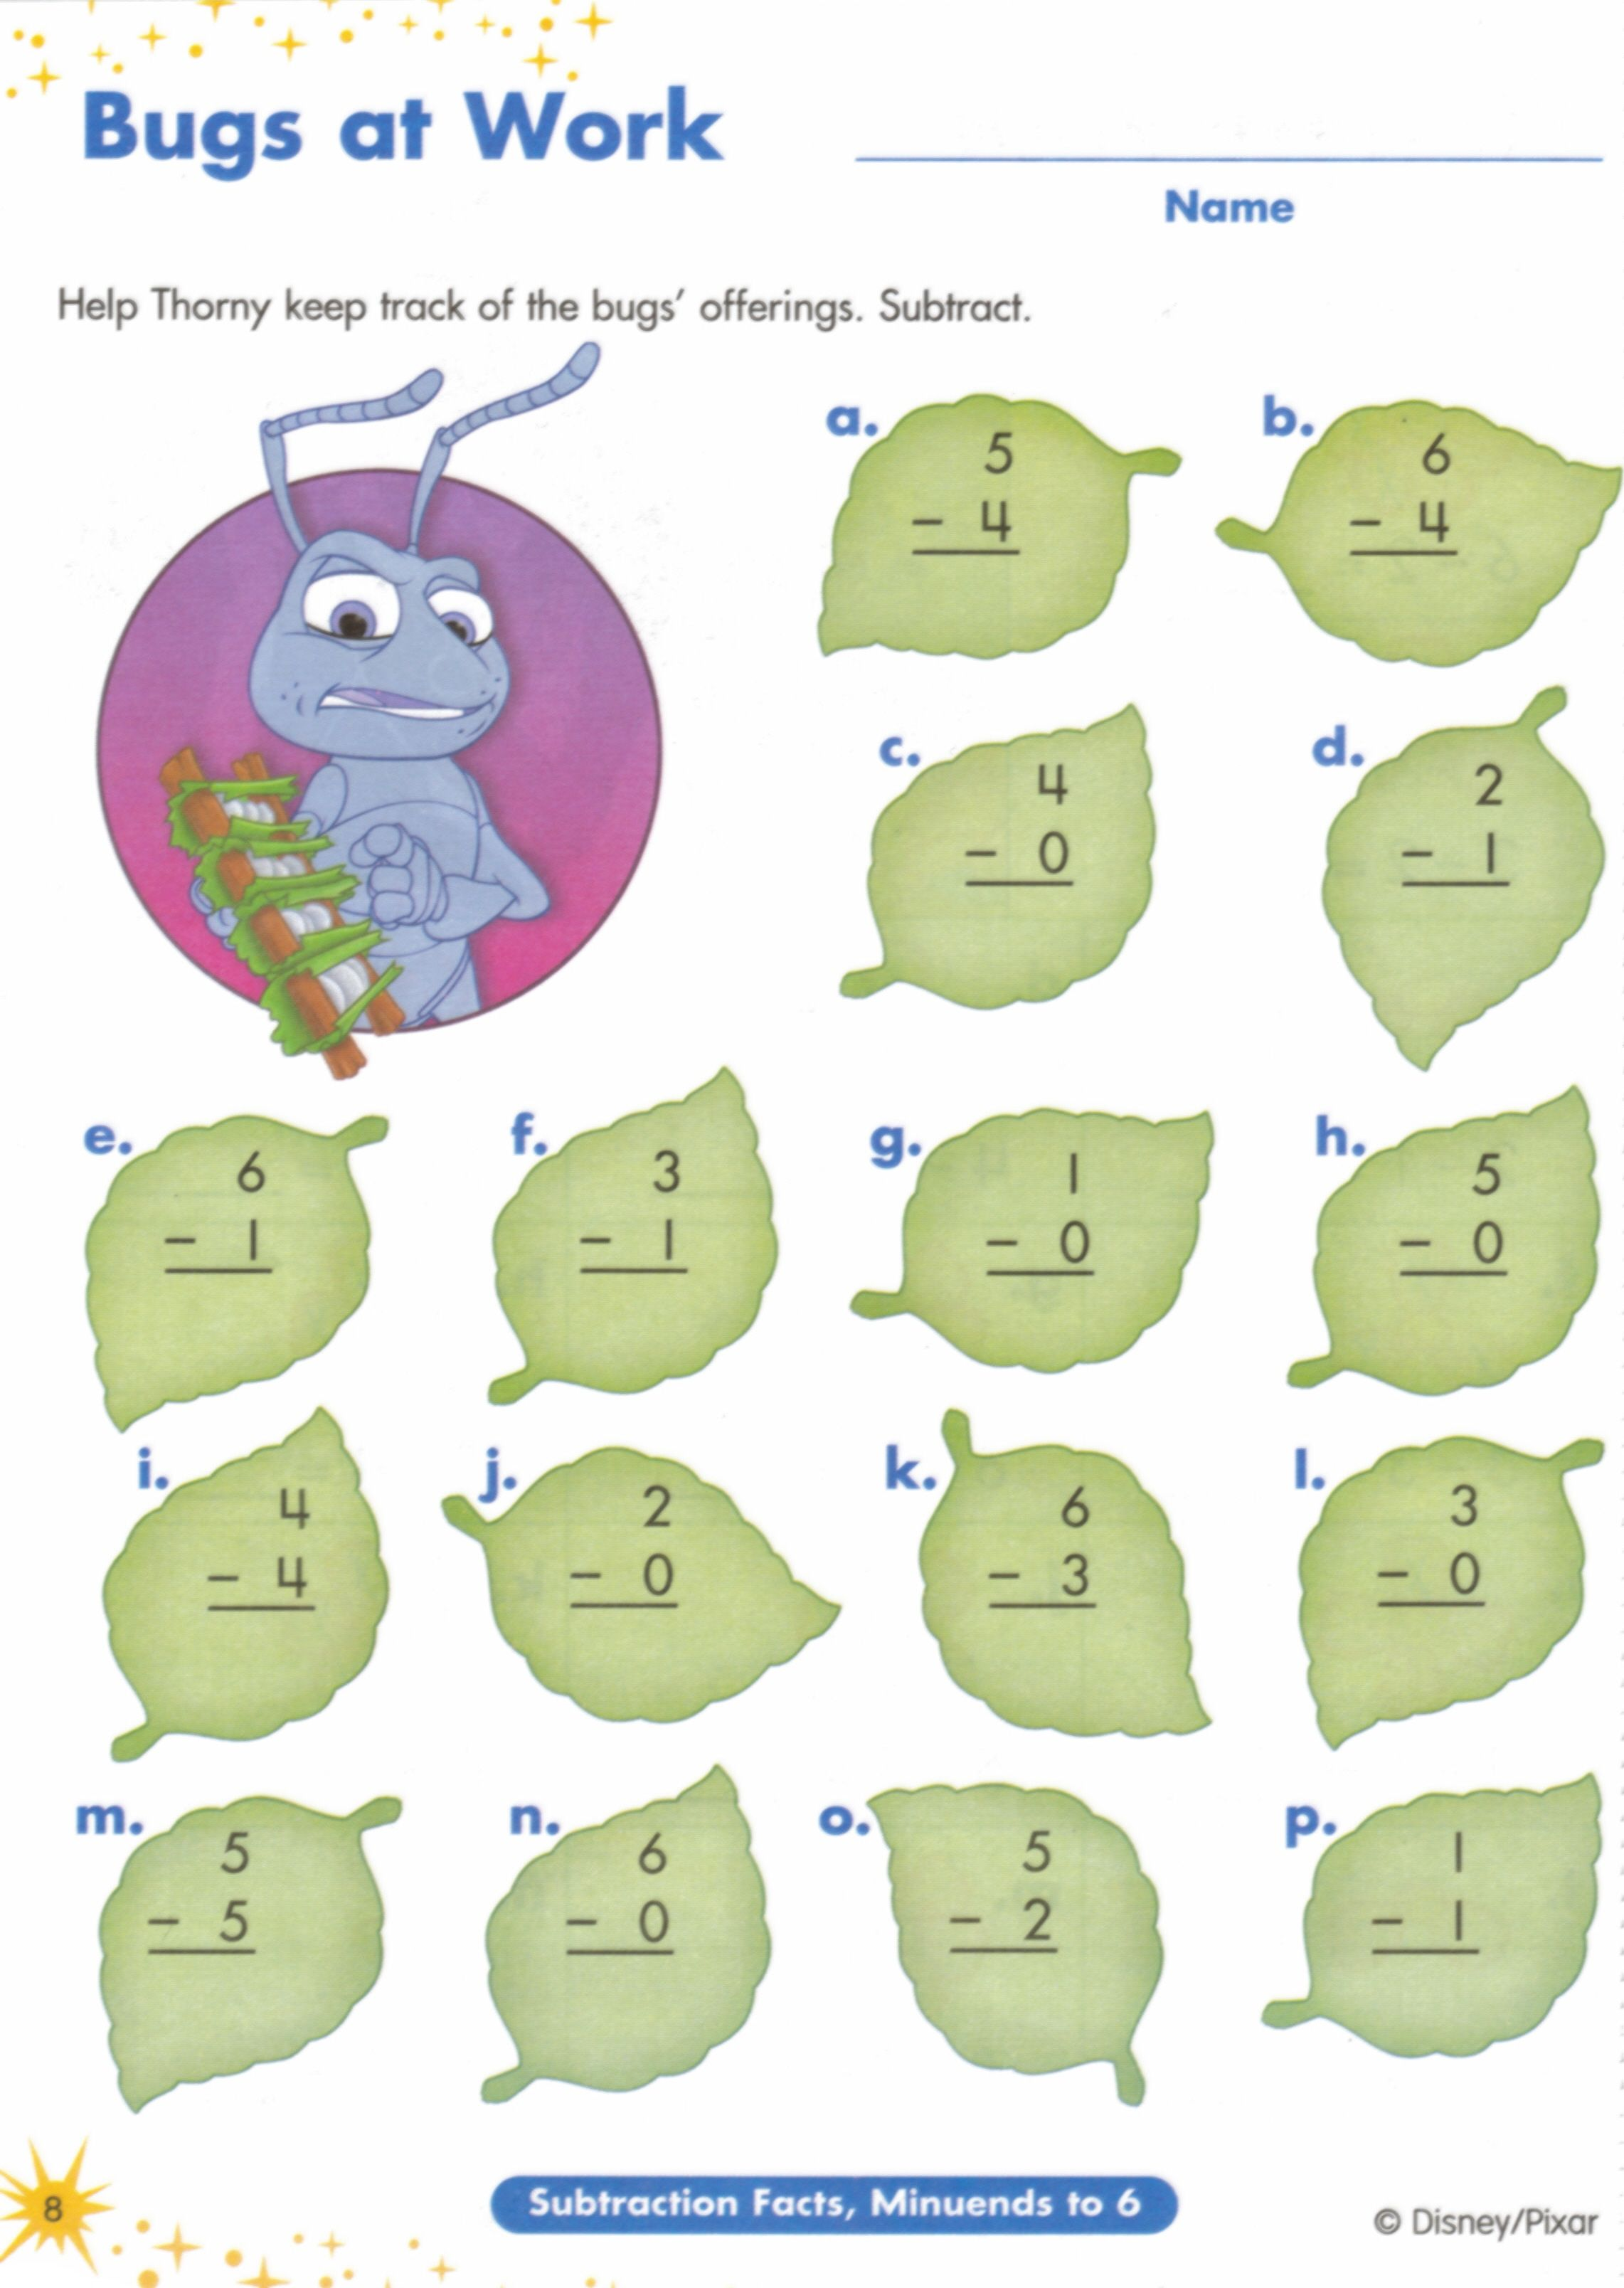 Proatmealus  Remarkable  Images About Worksheets On Pinterest  Fun Facts For Kids  With Gorgeous  Images About Worksheets On Pinterest  Fun Facts For Kids Earth Day Worksheets And Jungles With Amazing Learning Spanish Worksheets Also Printable Self Esteem Worksheets In Addition Money Worksheets Giving Change And Distance Worksheet As Well As Writing Sentences Year  Worksheets Additionally Bill Nye Respiration Worksheet From Pinterestcom With Proatmealus  Gorgeous  Images About Worksheets On Pinterest  Fun Facts For Kids  With Amazing  Images About Worksheets On Pinterest  Fun Facts For Kids Earth Day Worksheets And Jungles And Remarkable Learning Spanish Worksheets Also Printable Self Esteem Worksheets In Addition Money Worksheets Giving Change From Pinterestcom